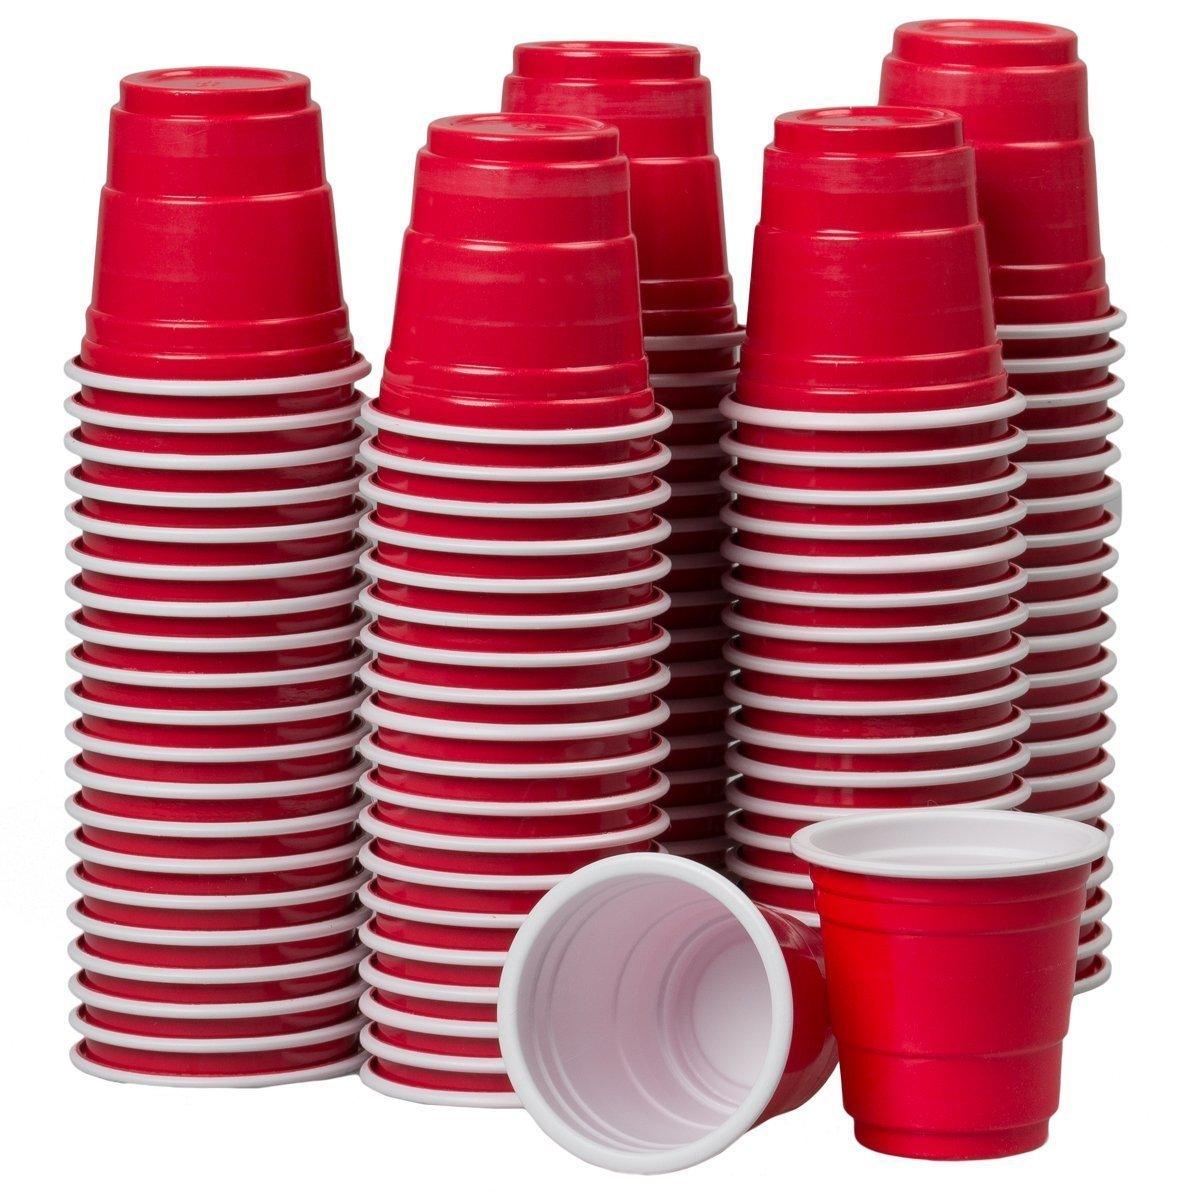 2oz Mini Red Solo Cups - 100 Count - Disposable Tiny Shot Glasses & Party Shooters - Great for Alcohol Tasting, Tailgates, Jager Bombs, Roulette, Wine, Beer, Liquor - Party Supplies by Drinking Game Zone